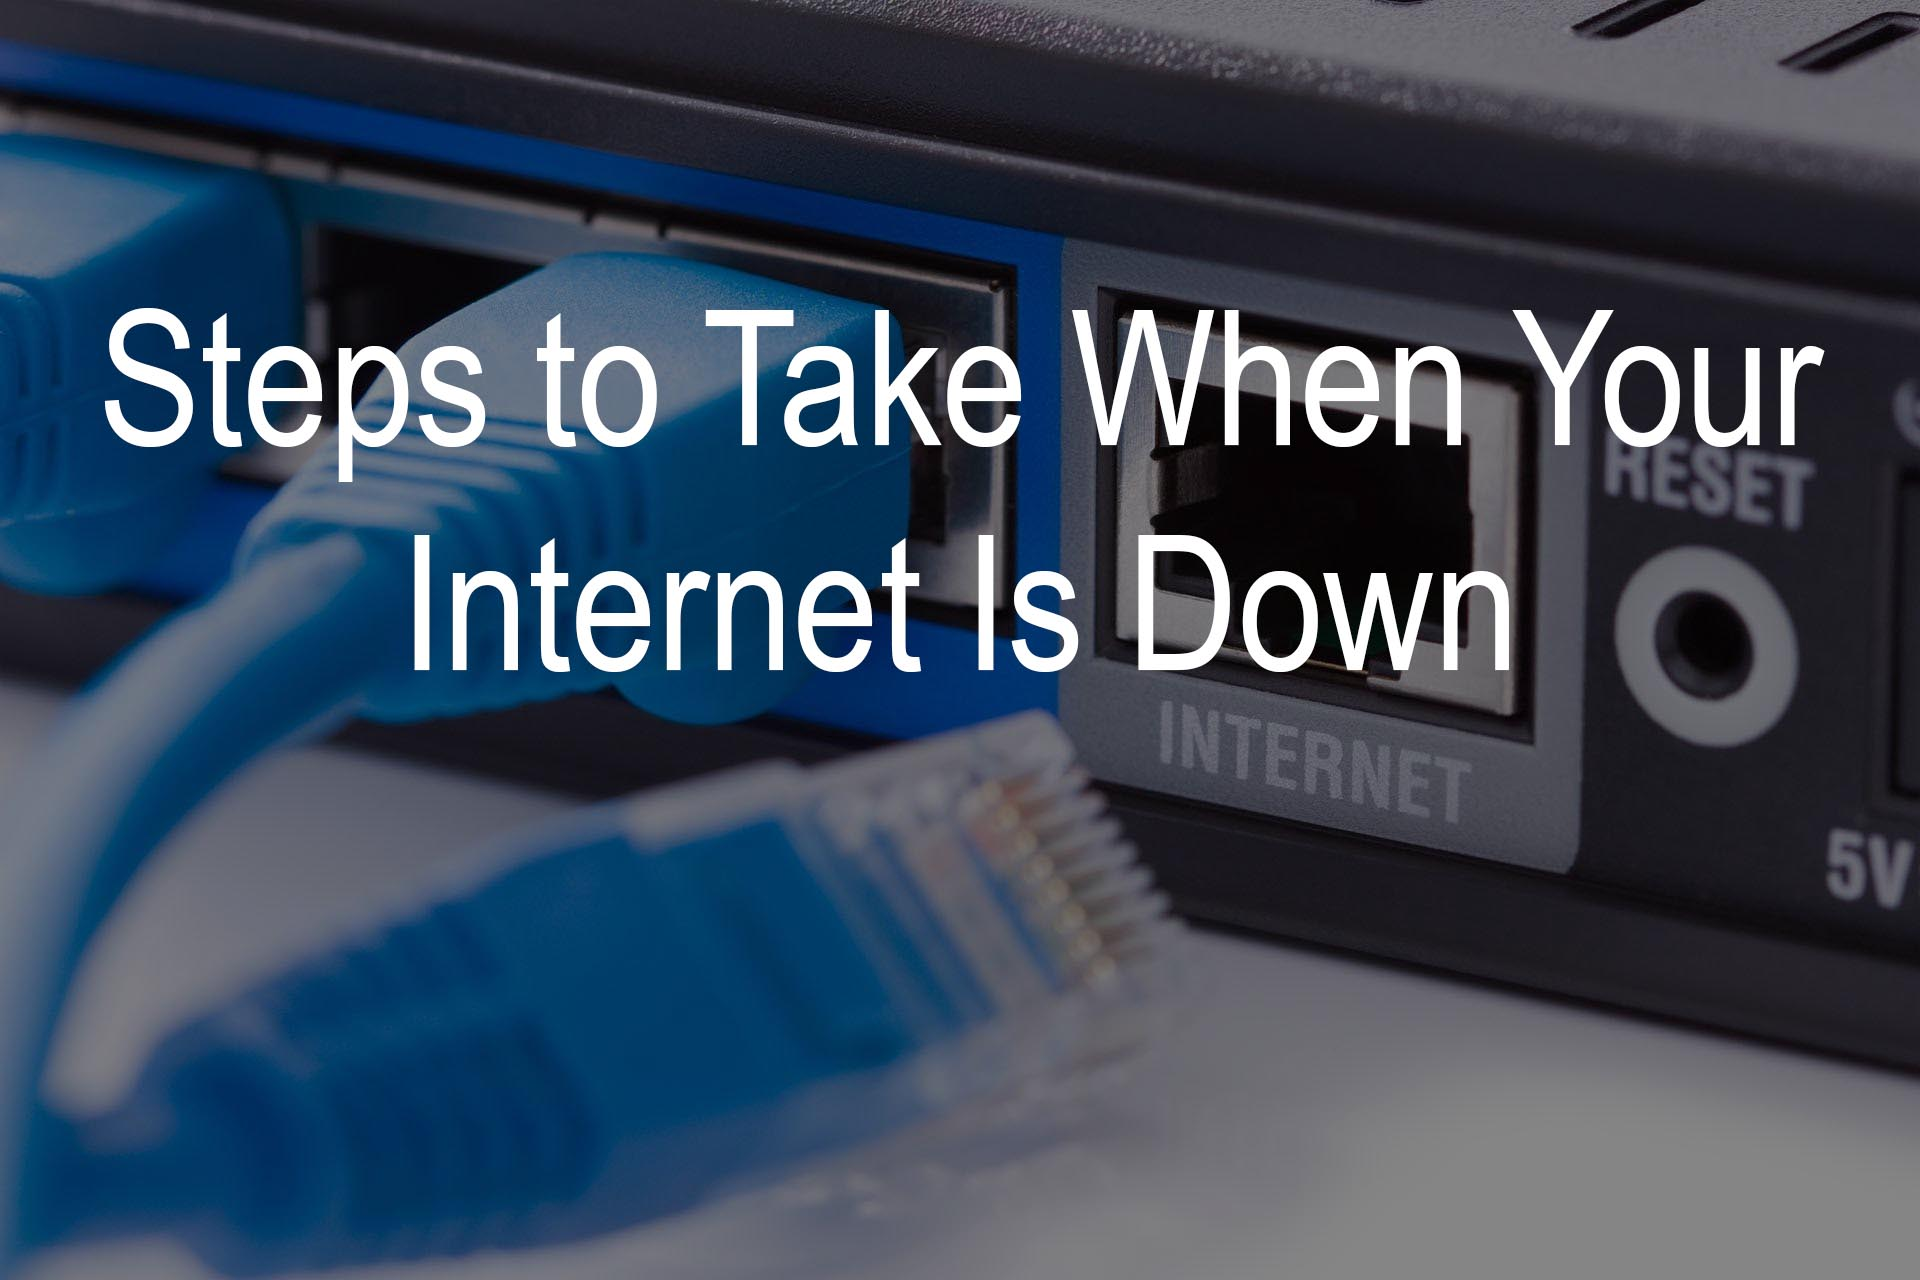 What to do when you're Internet is down